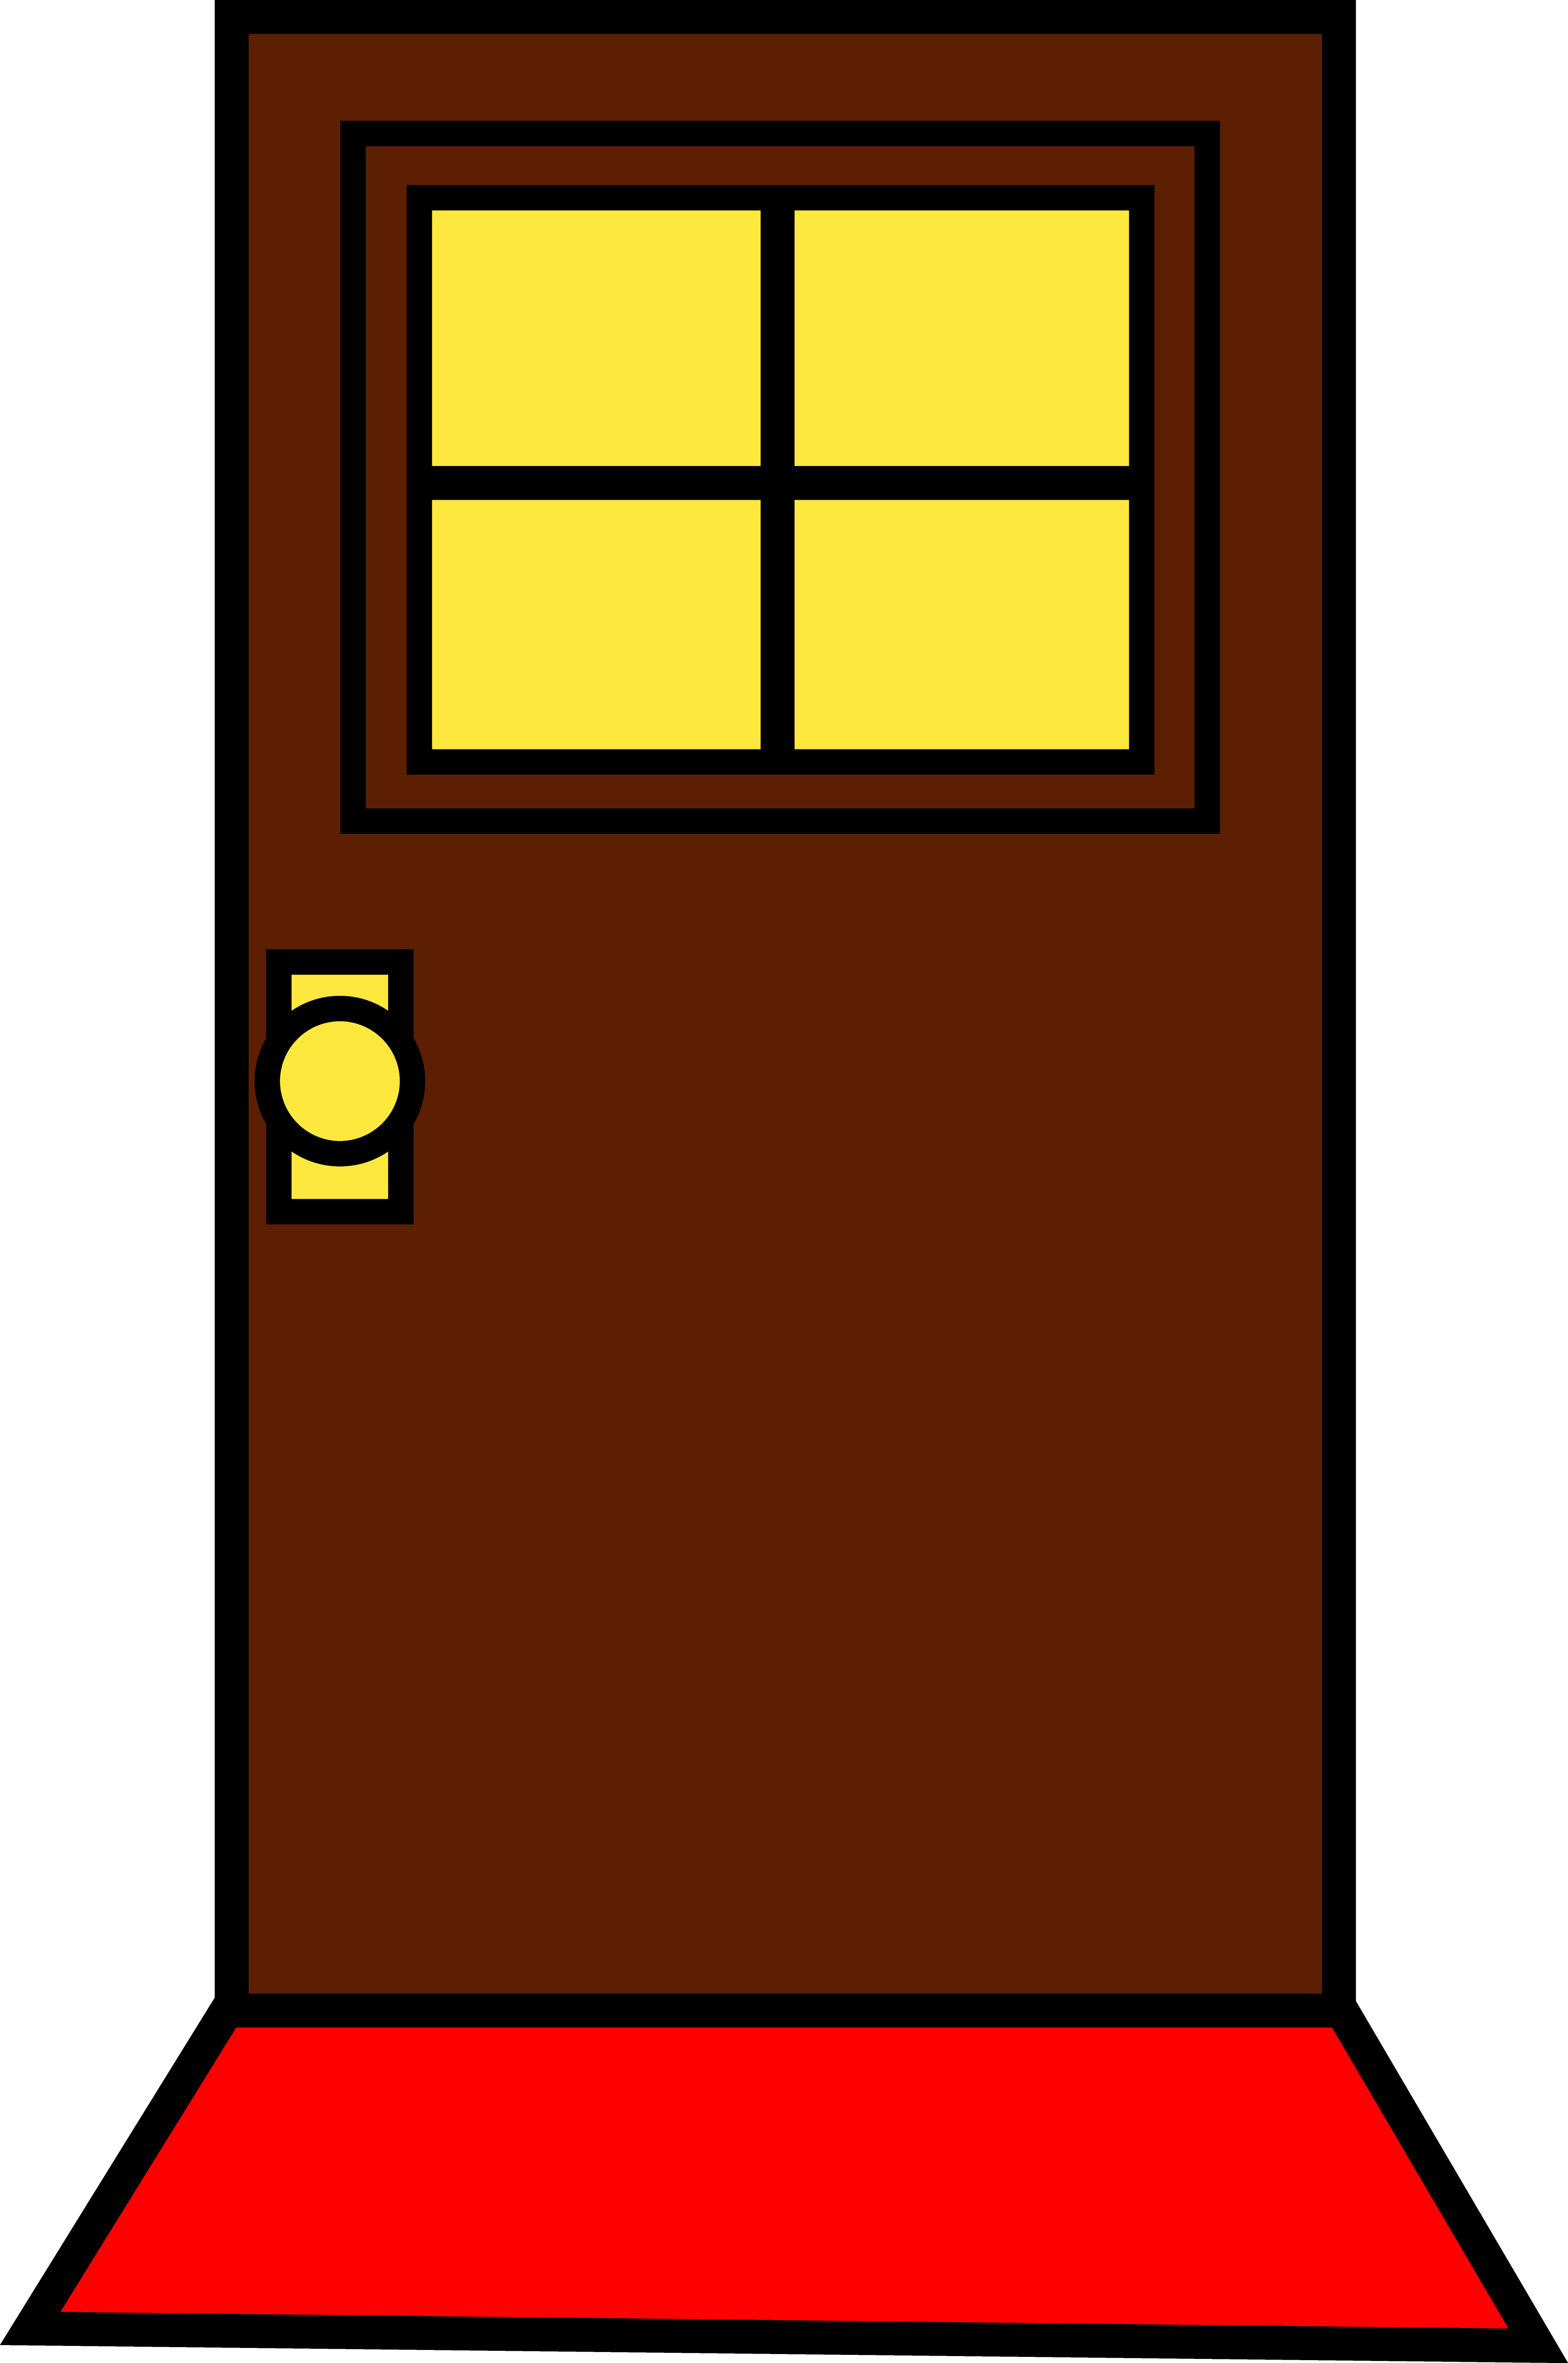 Simple house front clipart graphic black and white House Door Clipart graphic black and white